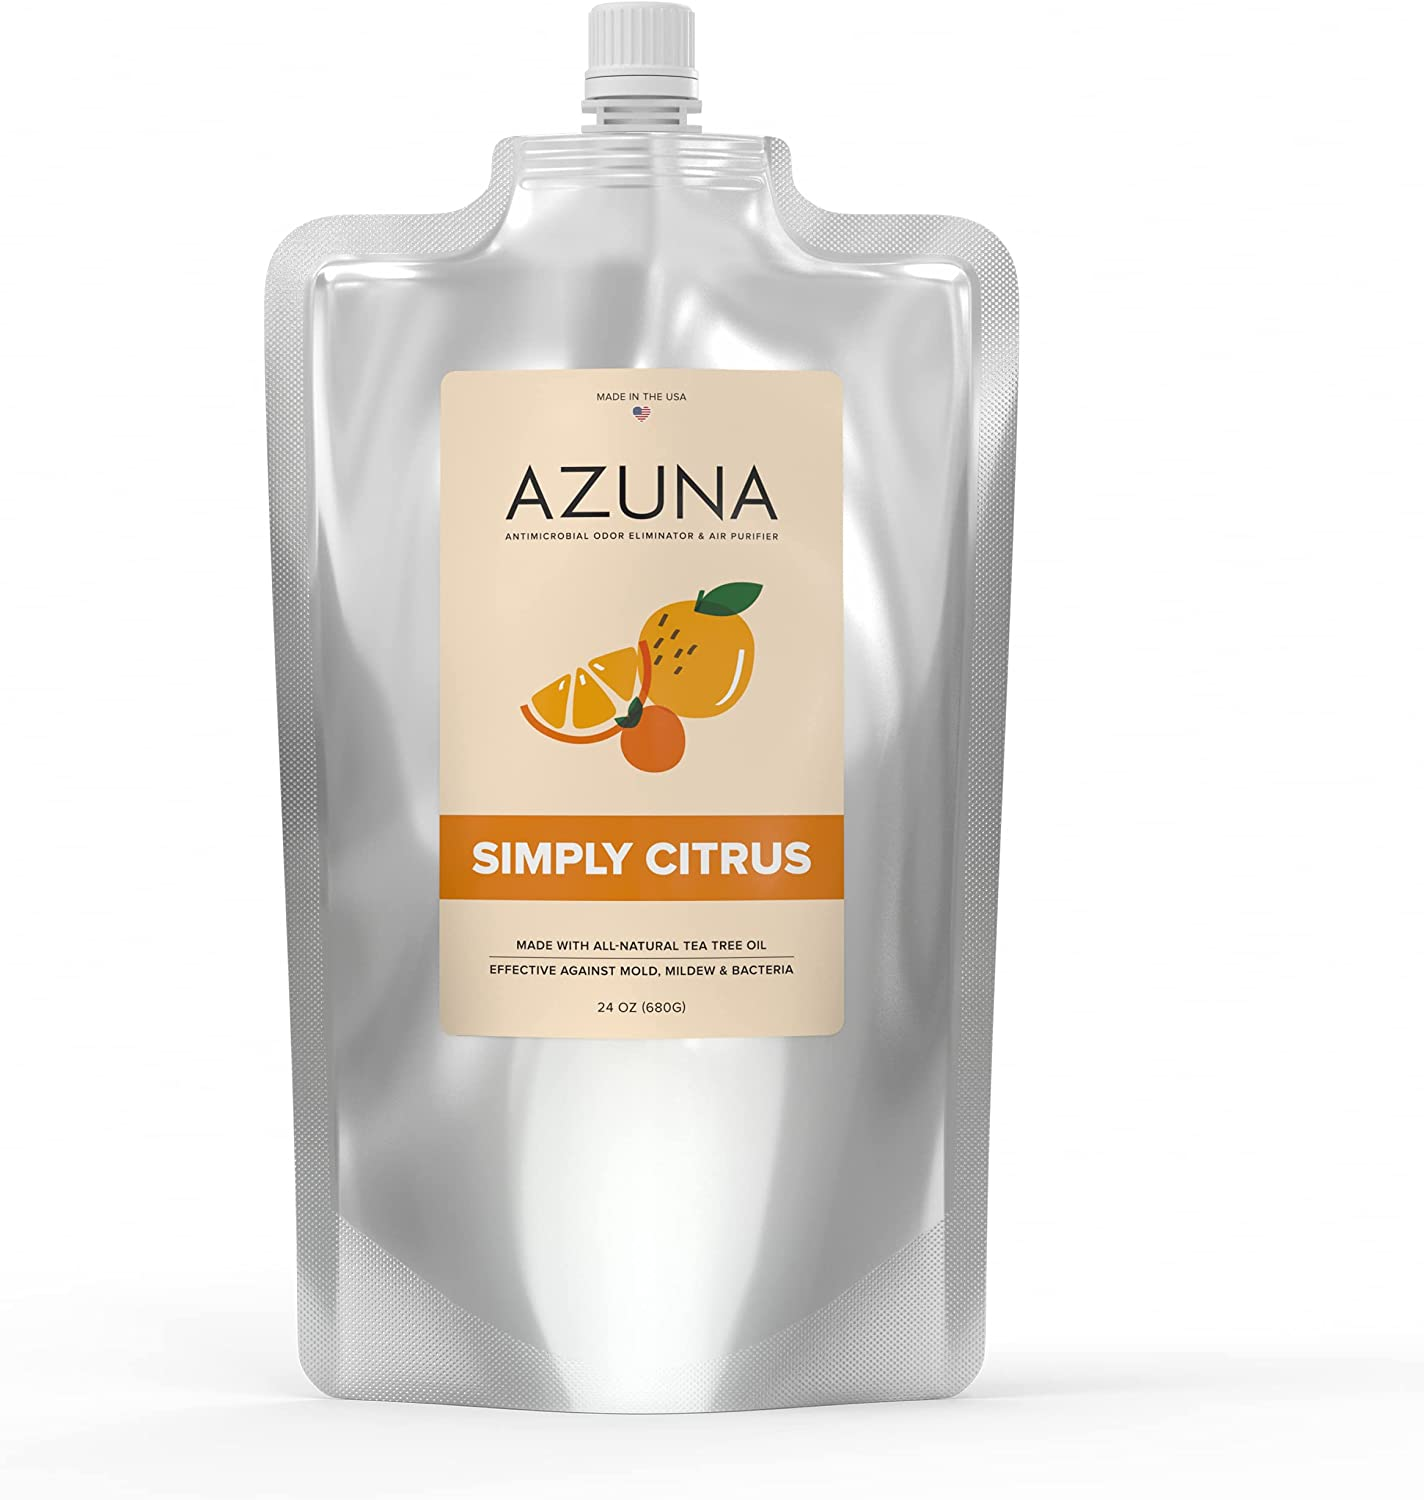 Azuna All-Natural Air Purifier Gel Refill Pouch, Plant-Based Air Freshener for Home with Tea Tree Oil for Pet, Smoke, and Other Strong Odors, 24 ounces, Simply Citrus